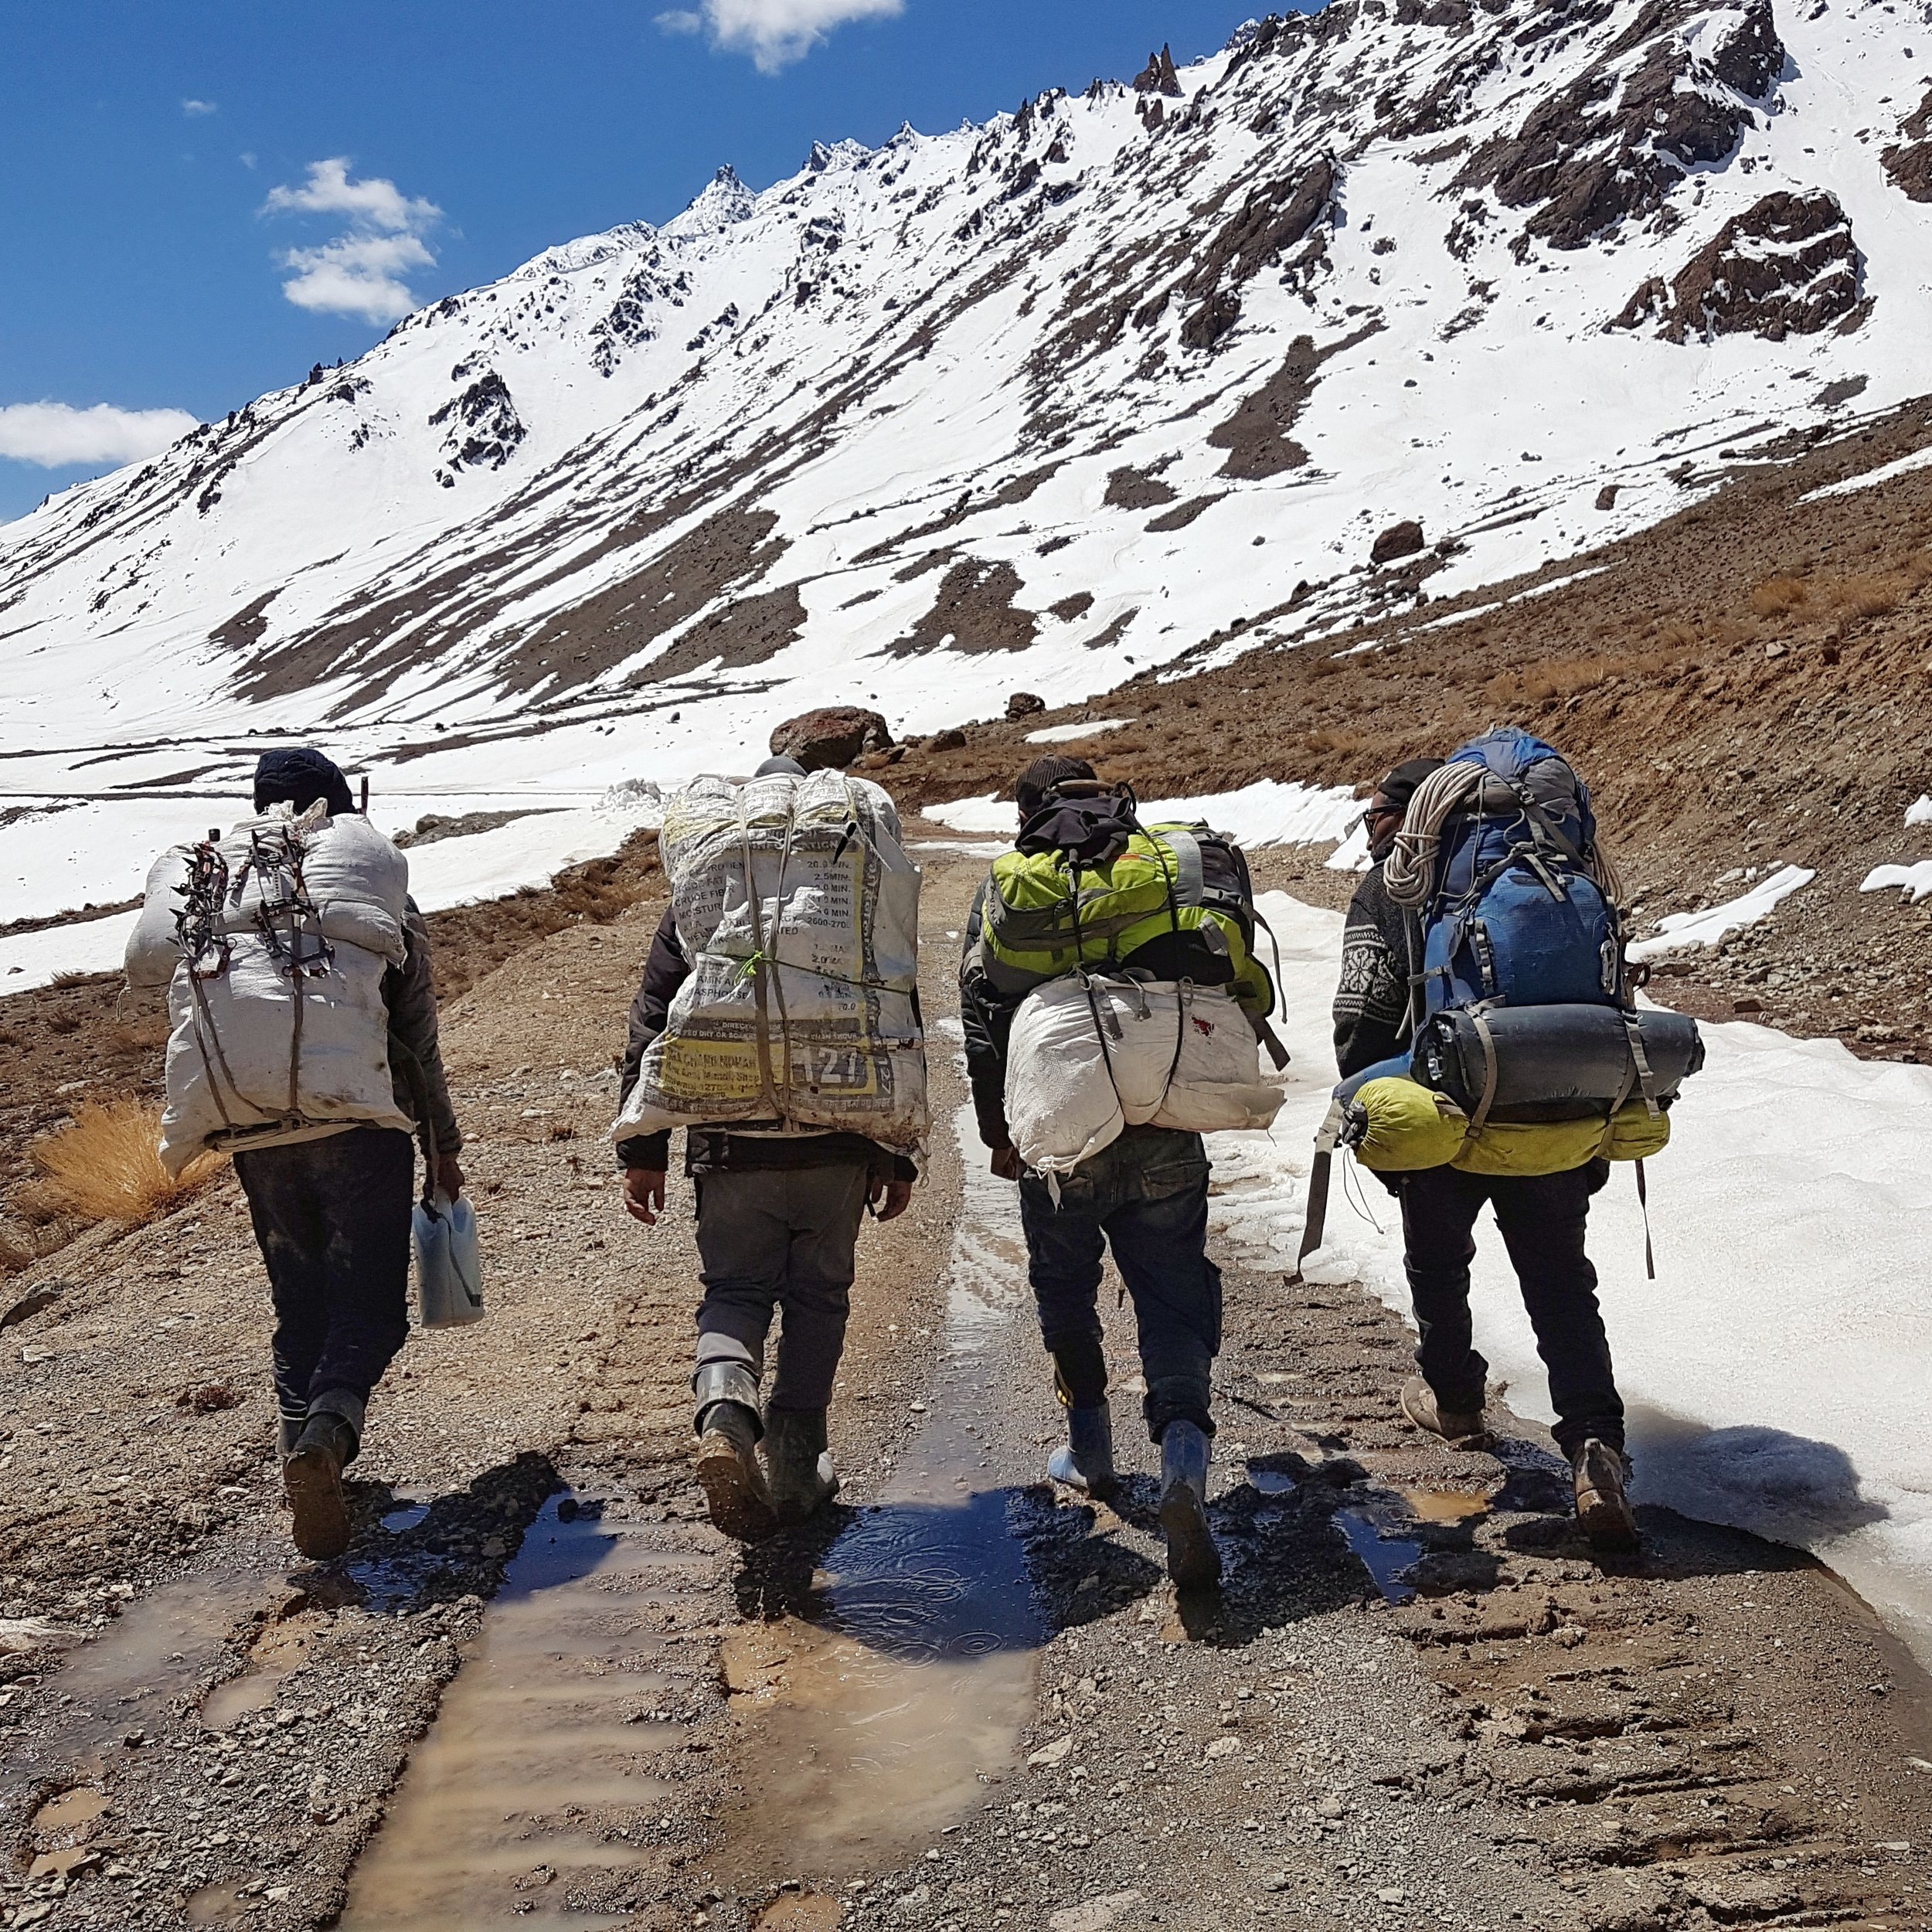 Sangay, my guide and the porters